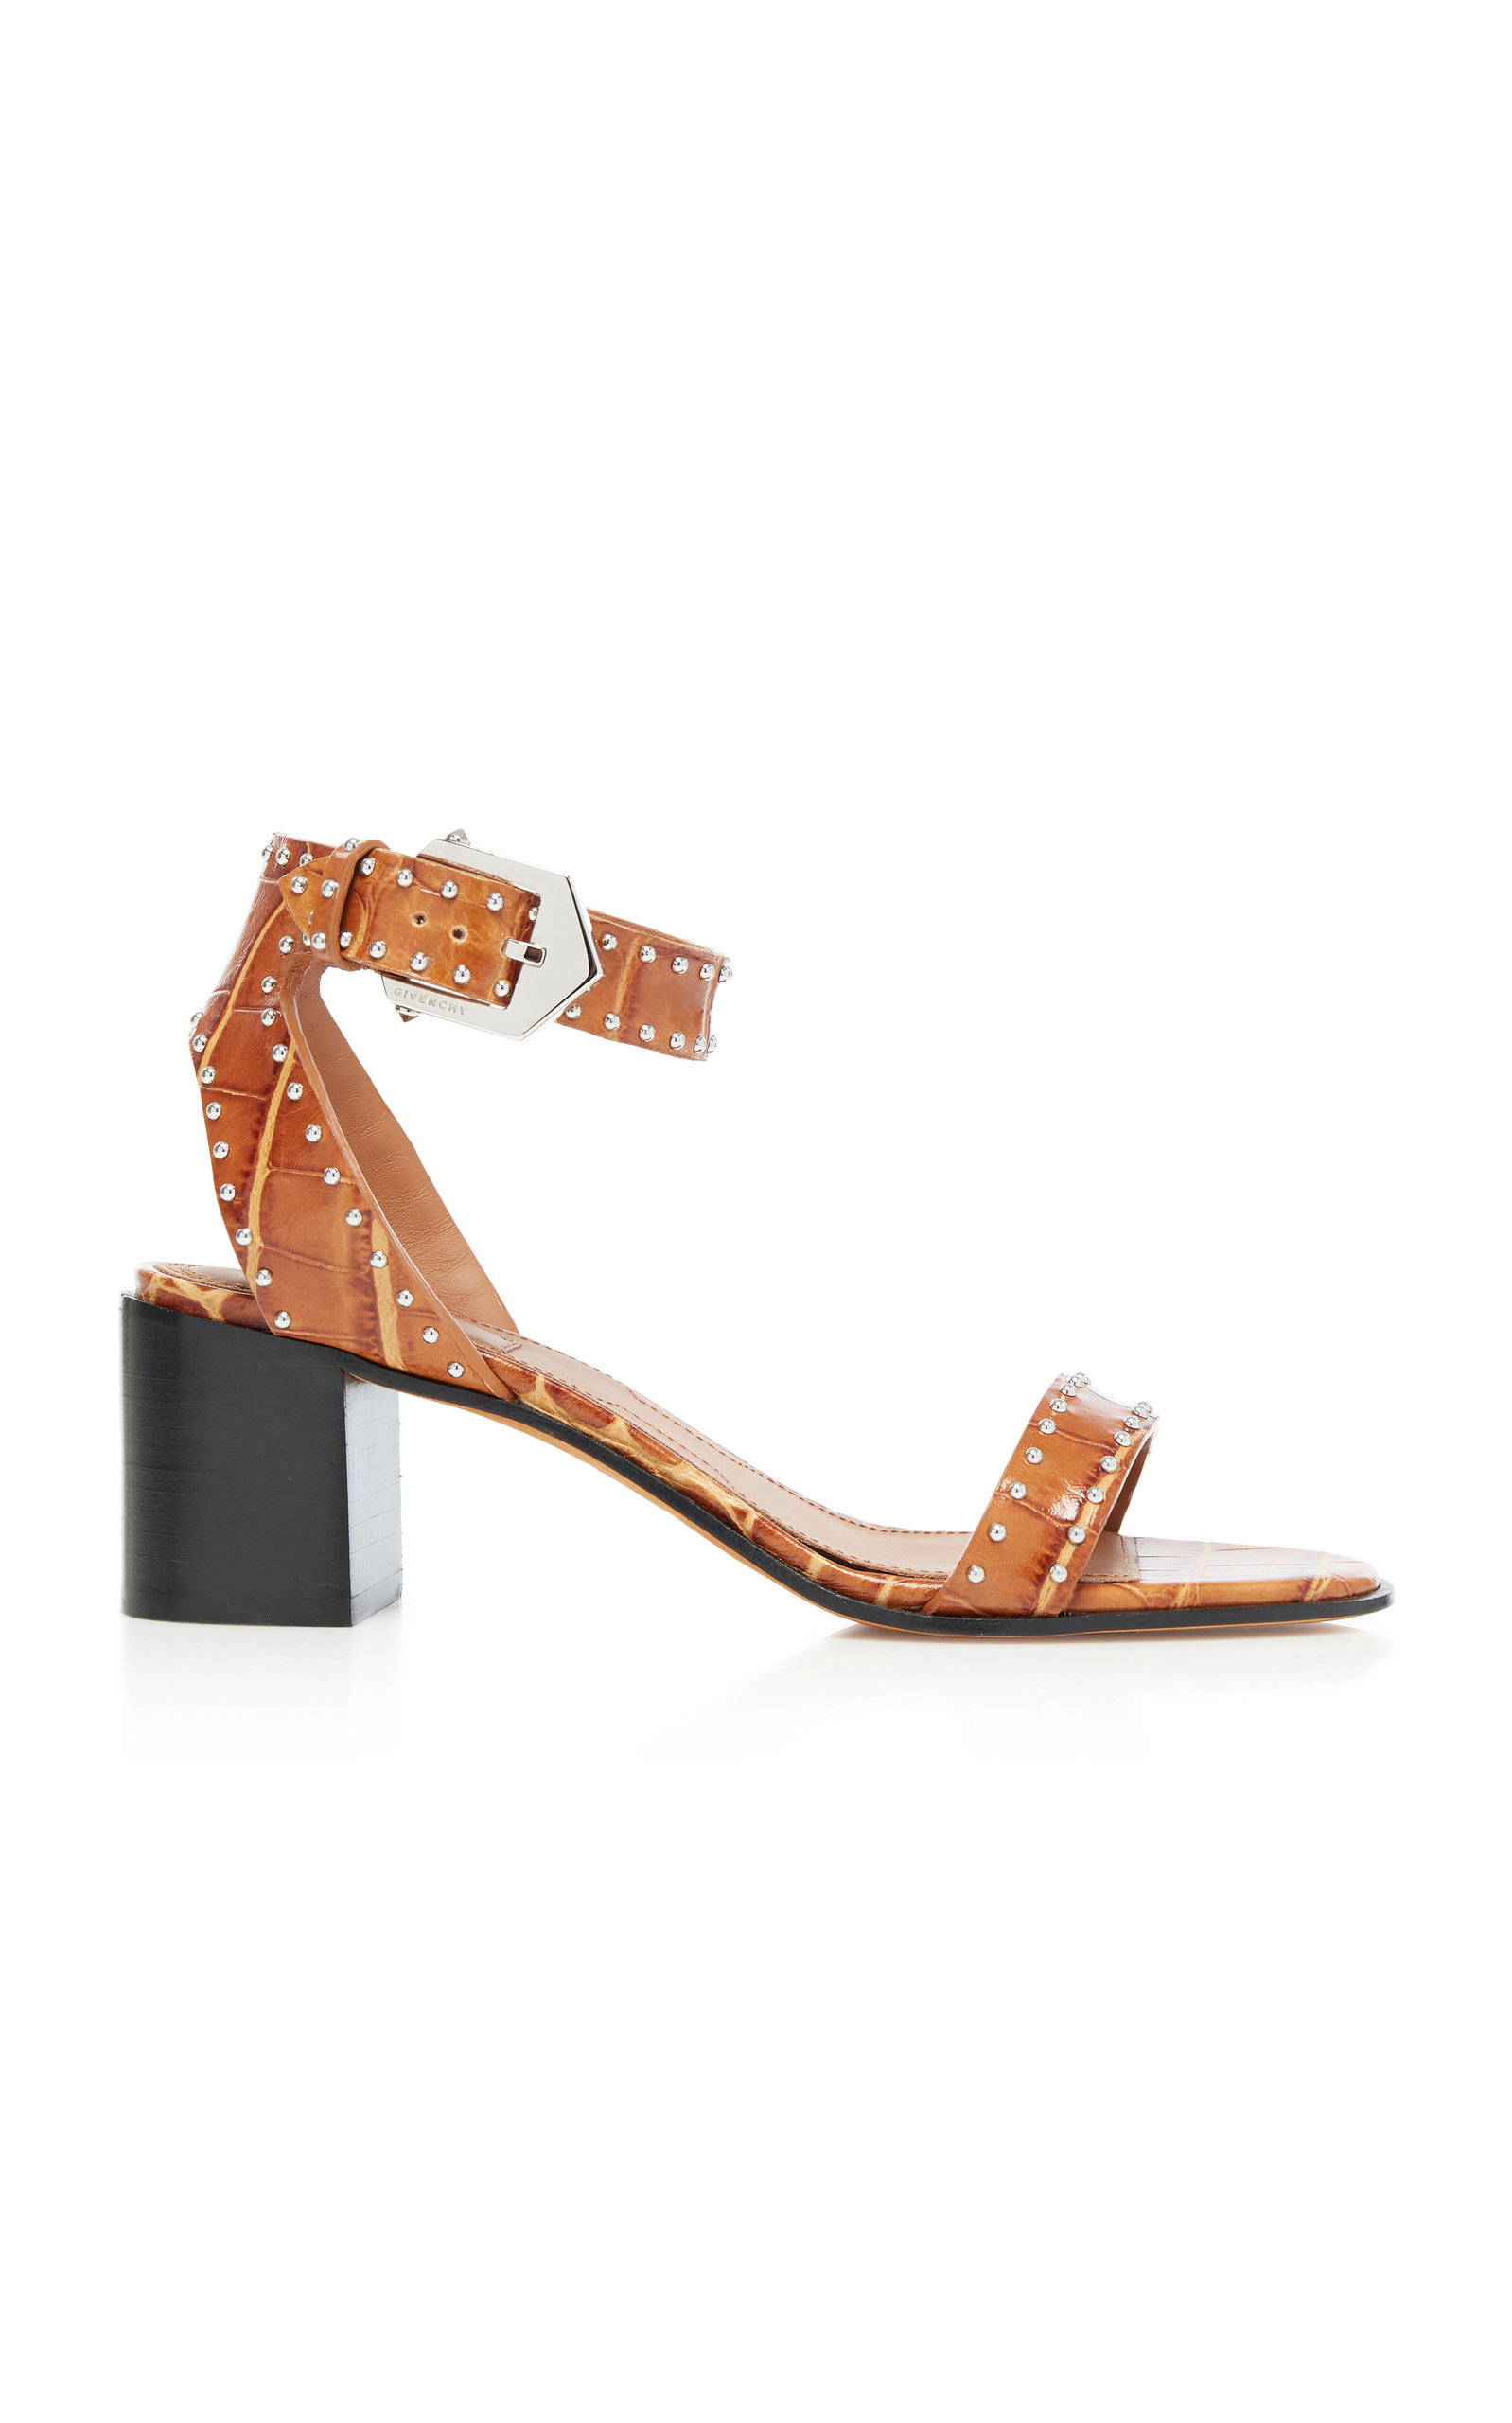 Givenchy Sandals Studded Leather Sandals